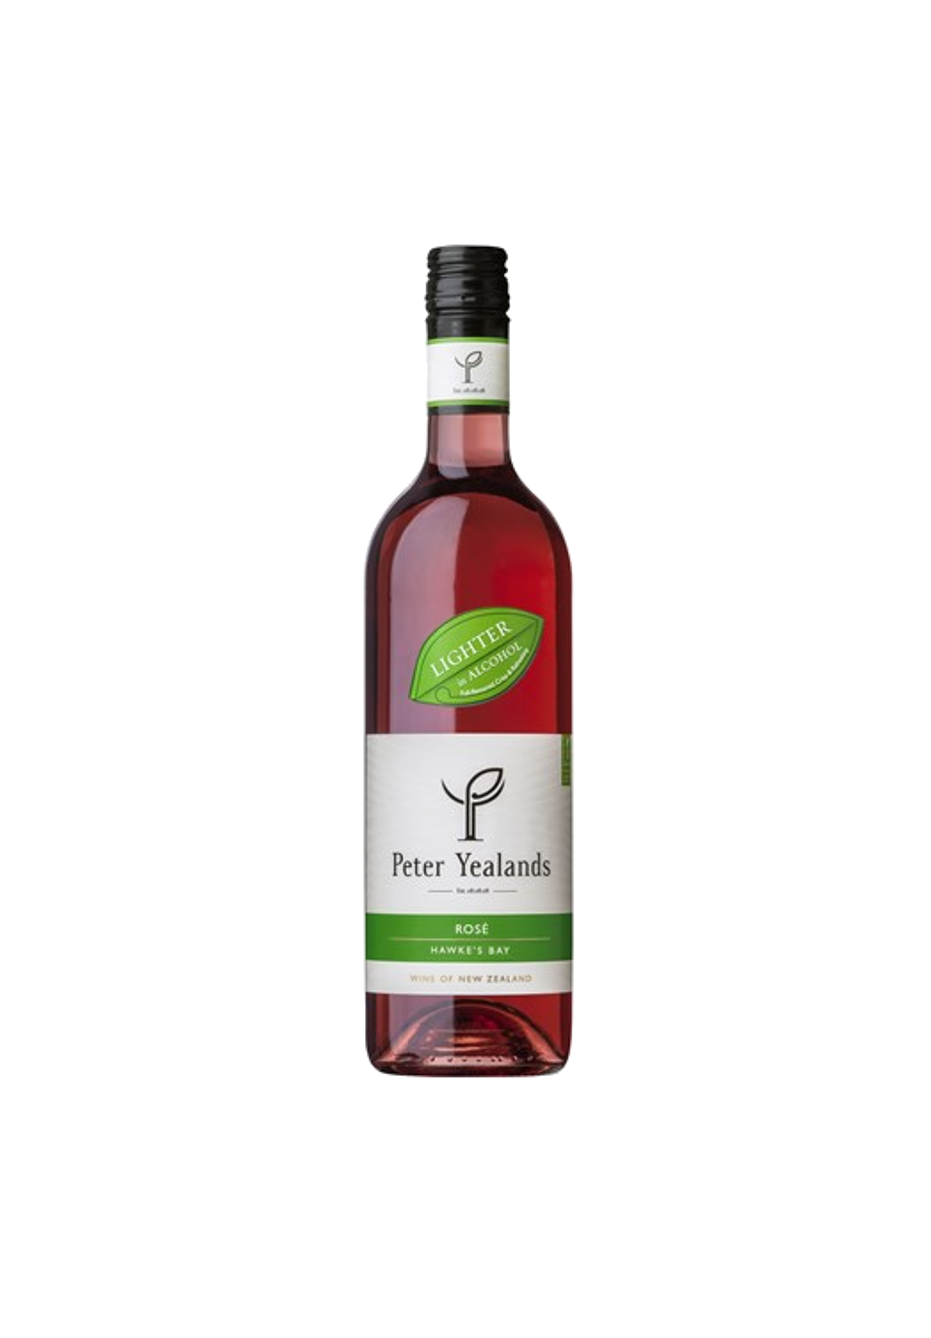 Peter Yealands Lighter in alcohol Alcohol Rosé 2016